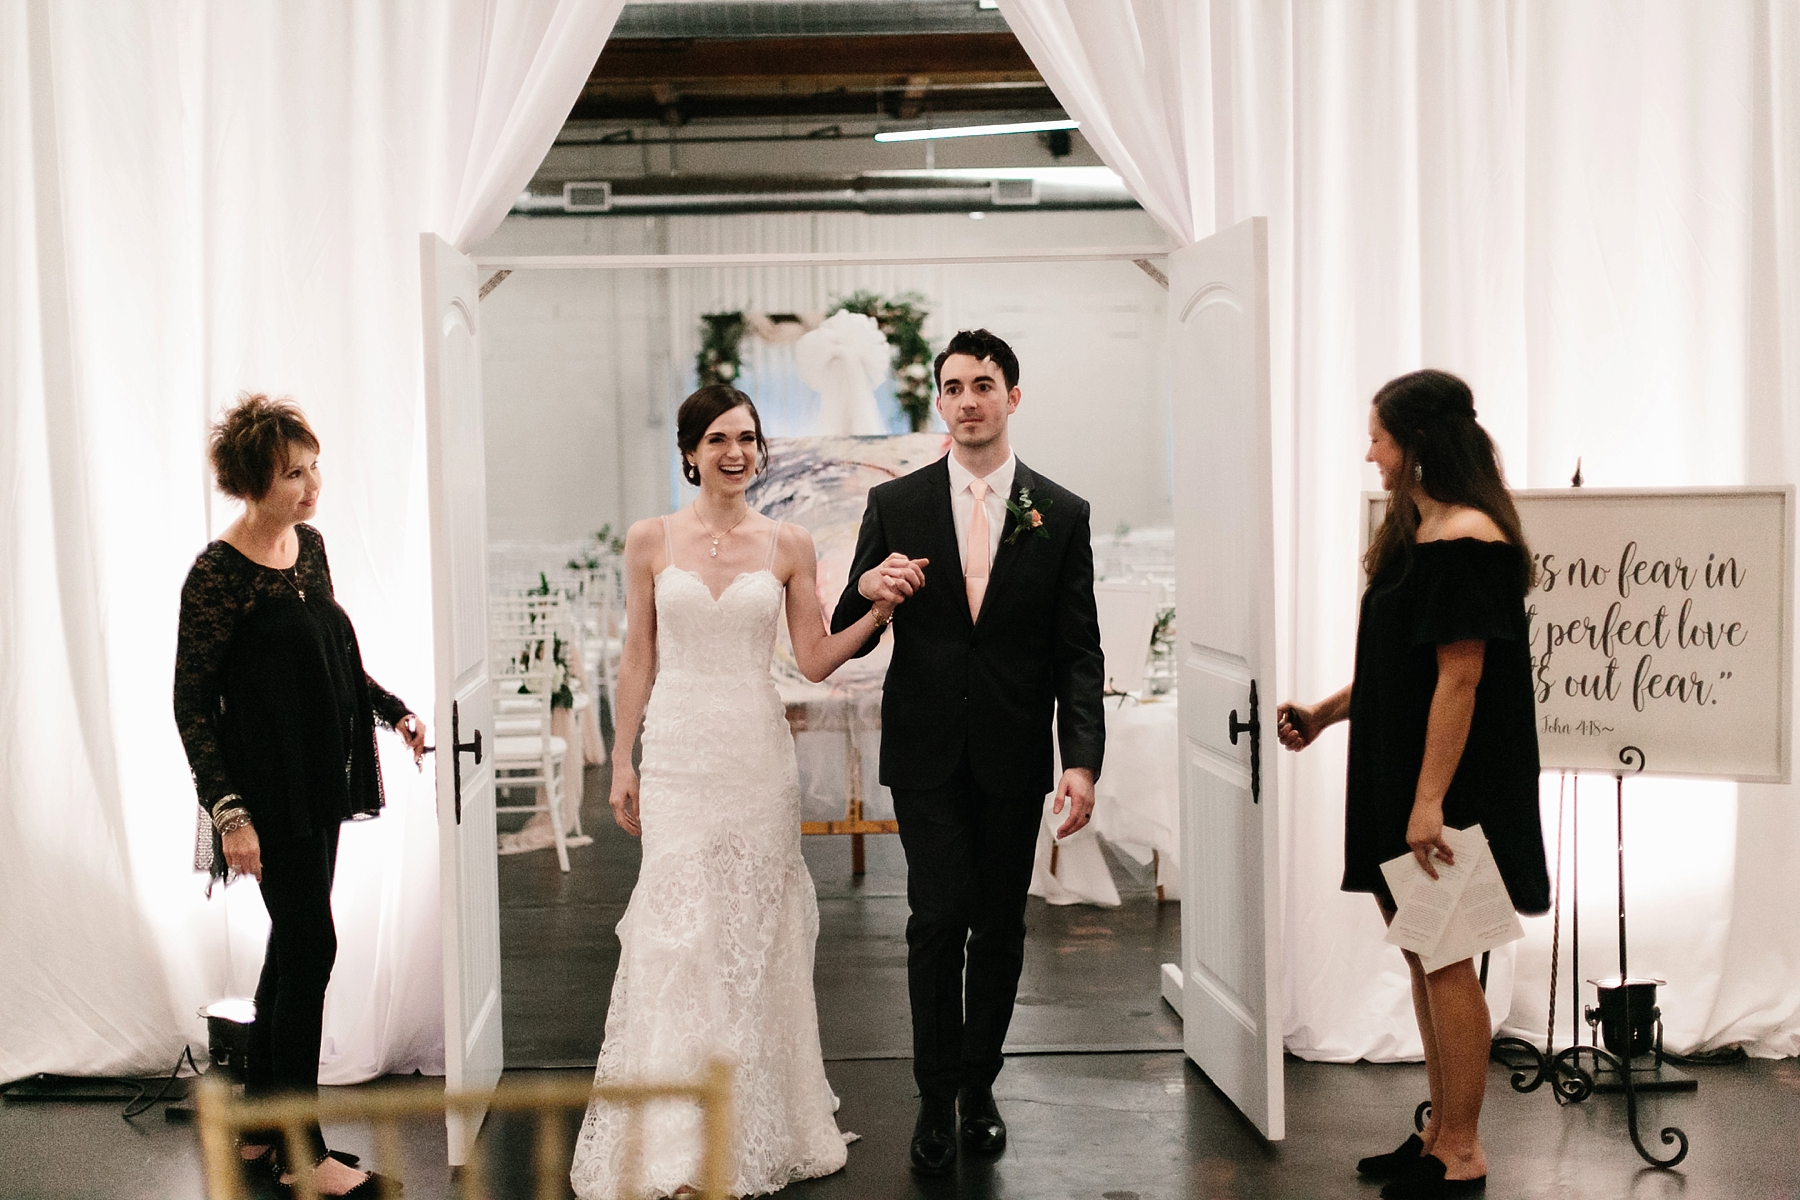 Emily + Caleb _ an elegant, intentional, industrial style wedding with navy + gold accents at 6500 in Dallas, TX by North Texas Wedding Photographer Rachel Meagan Photography _ 132